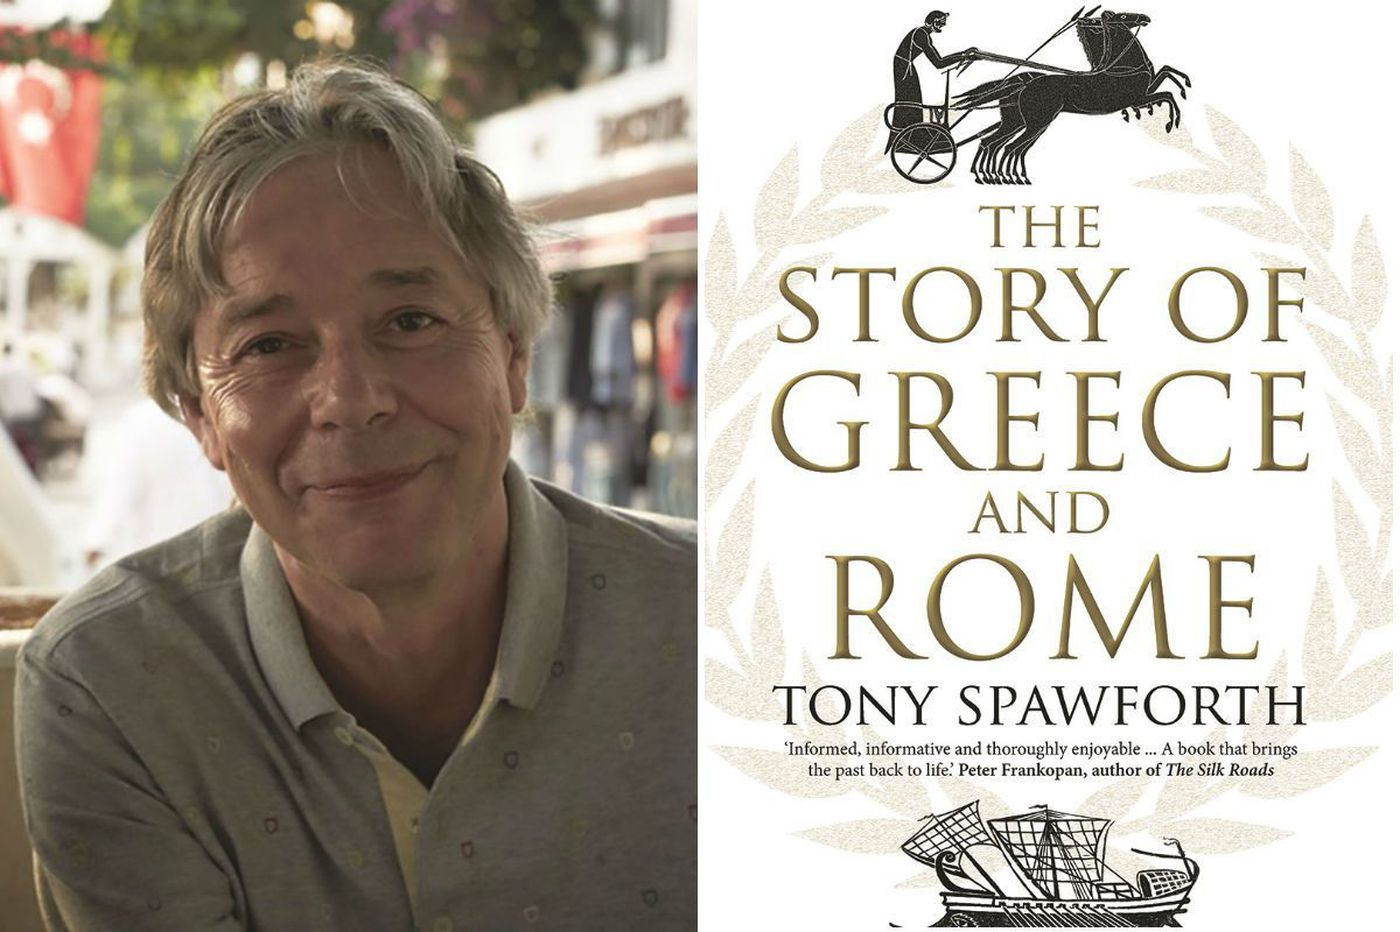 Tony Spawforth's 'Story of Greece and Rome': A sweeping tale for readers everywhere